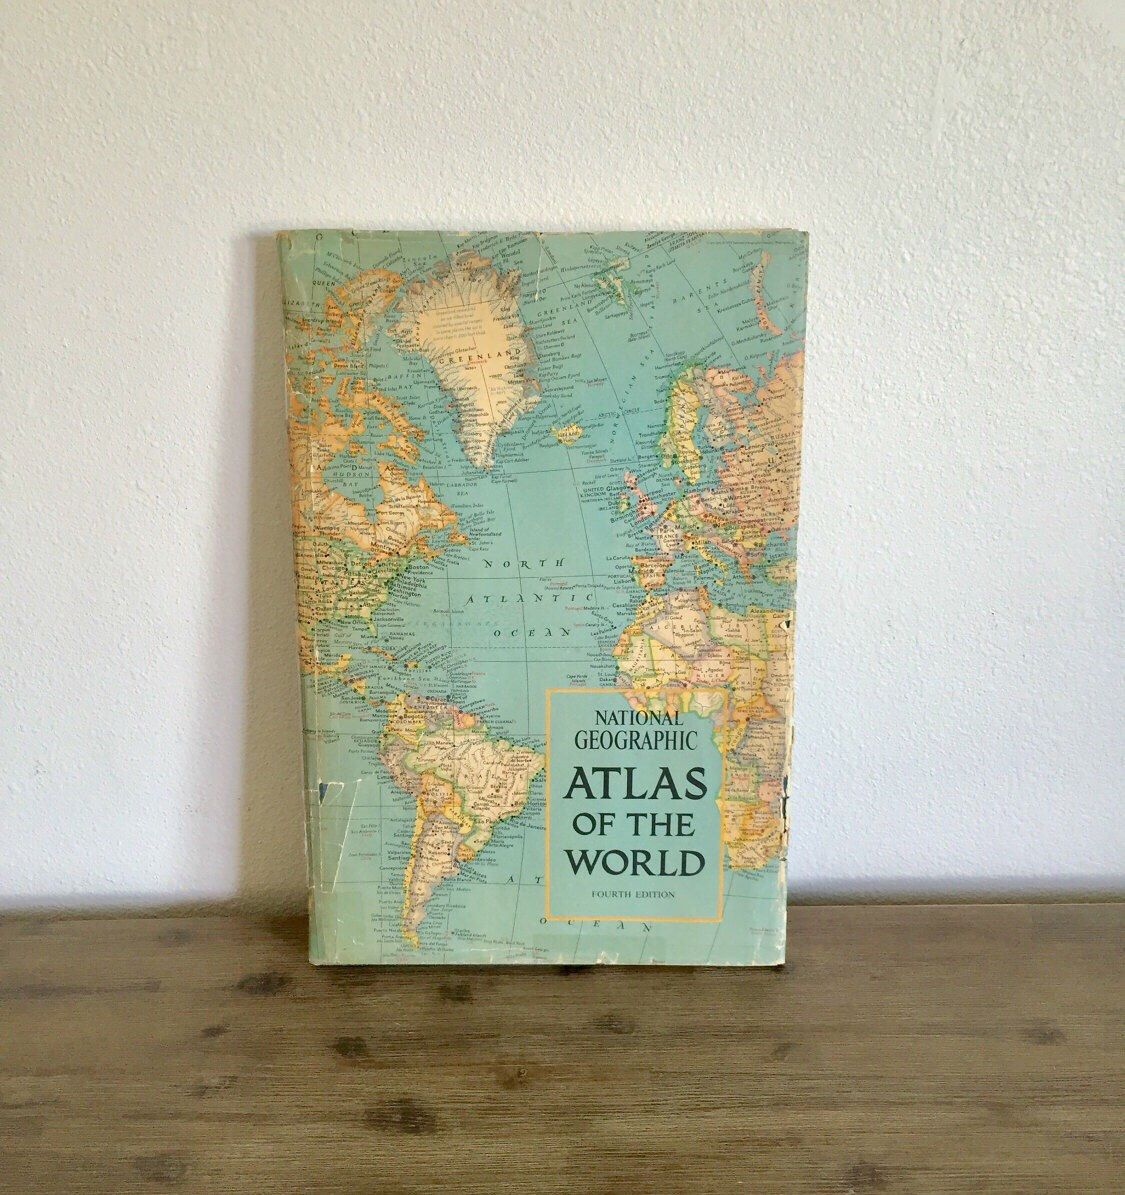 National geographic atlas of the world 1975 4th edition vintage national geographic atlas of the world 1975 4th edition vintage world atlas old maps diy map decoupage book world atlas book gumiabroncs Gallery